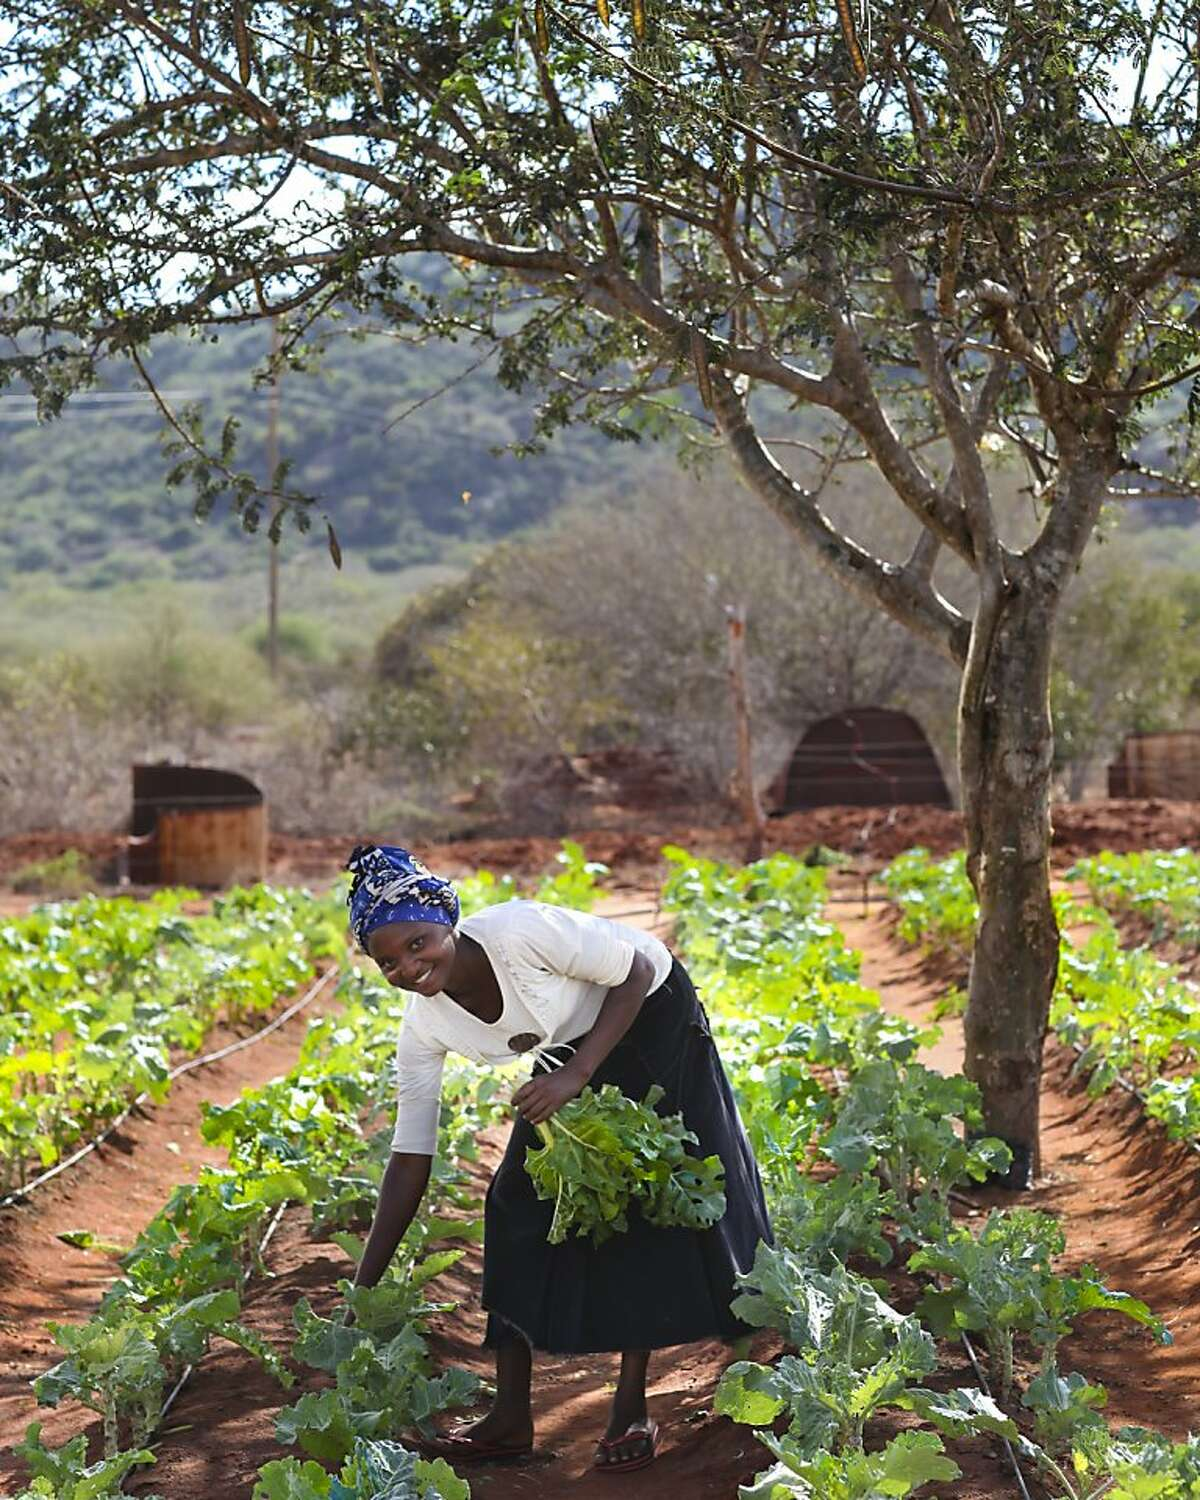 Sustainable agriculture methods give farmers an alternative to clearing trees for better land.